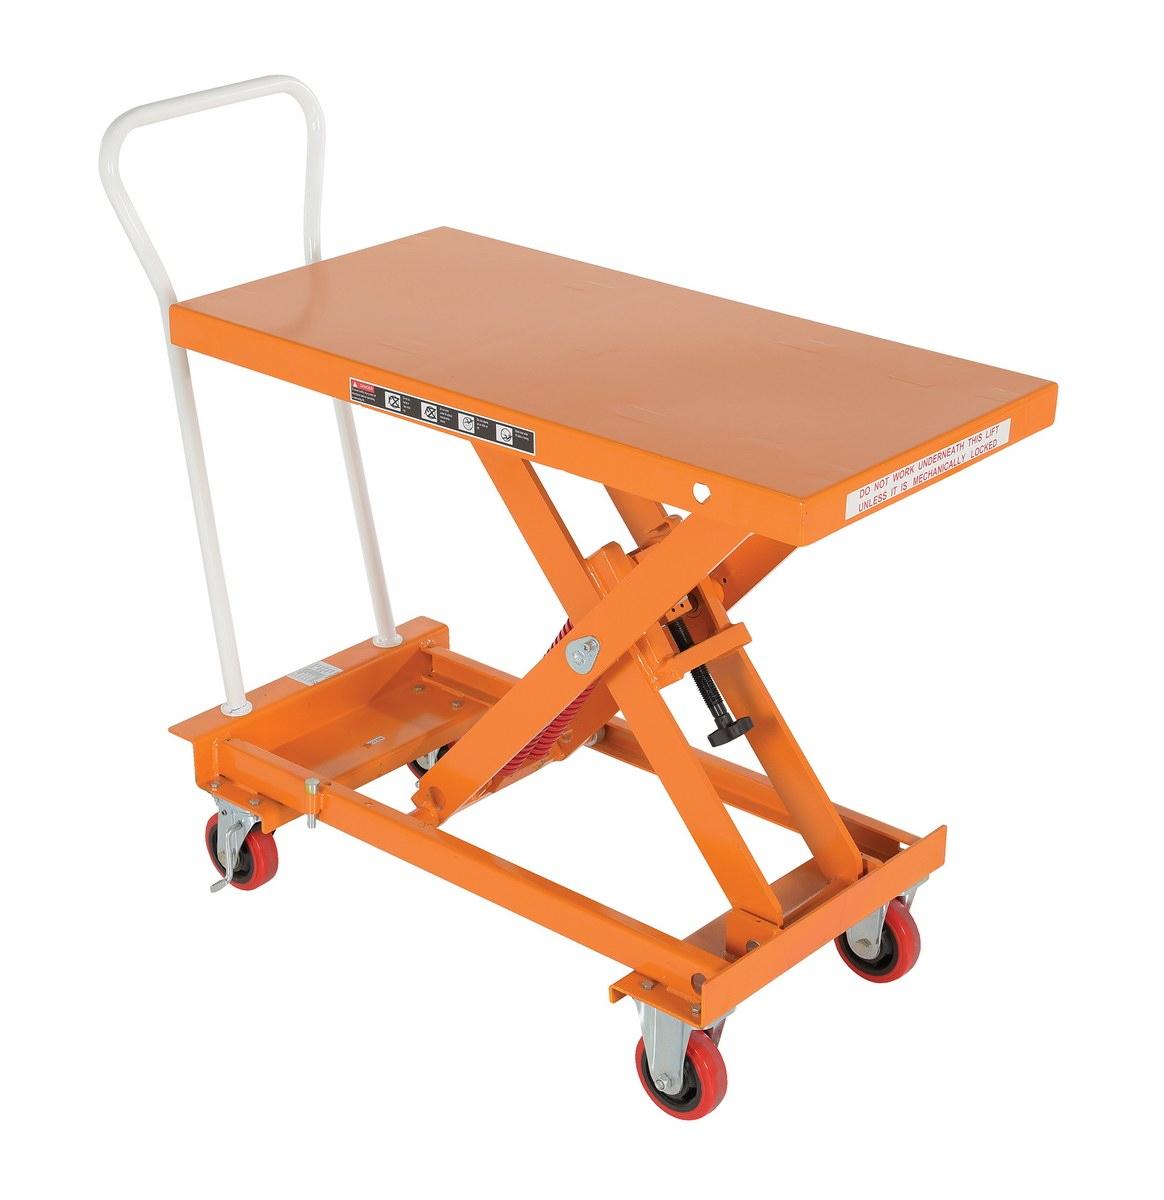 Vestil SCSC-800-2040 Self-Elevating Lift Cart